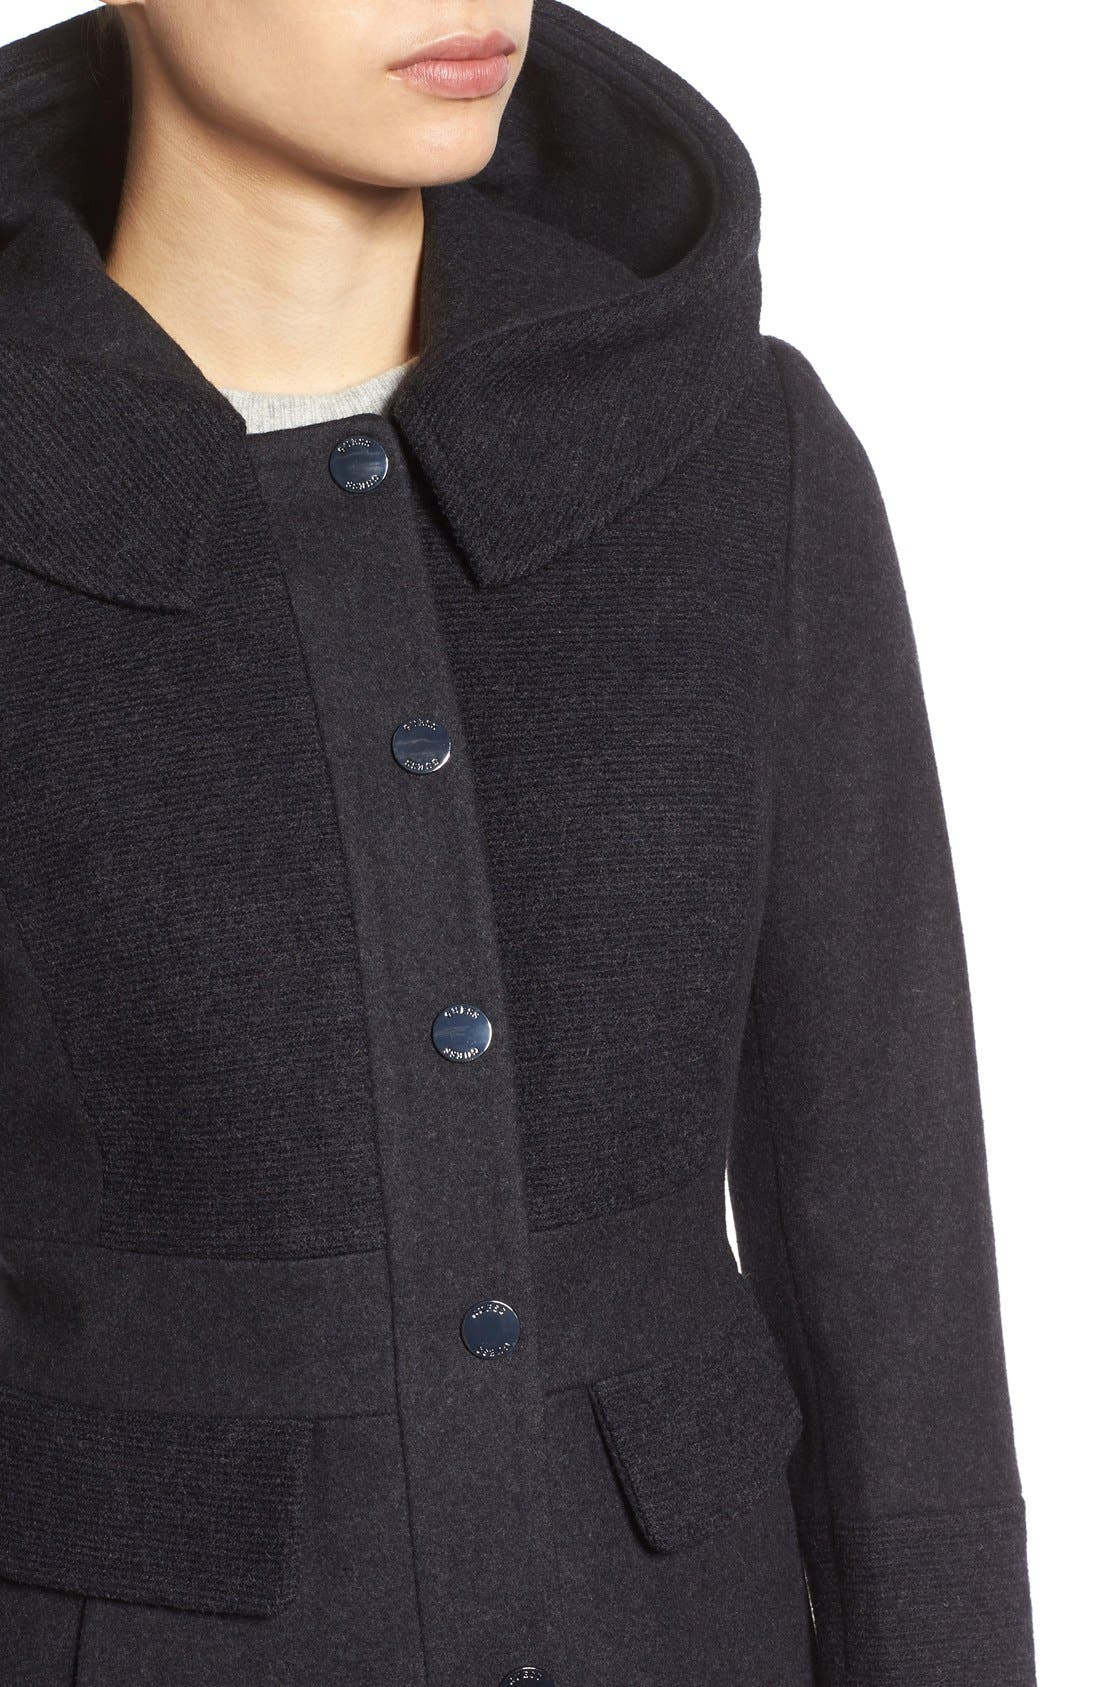 Wool Blend Hooded Coat,                             Alternate thumbnail 4, color,                             Charcoal/ Black